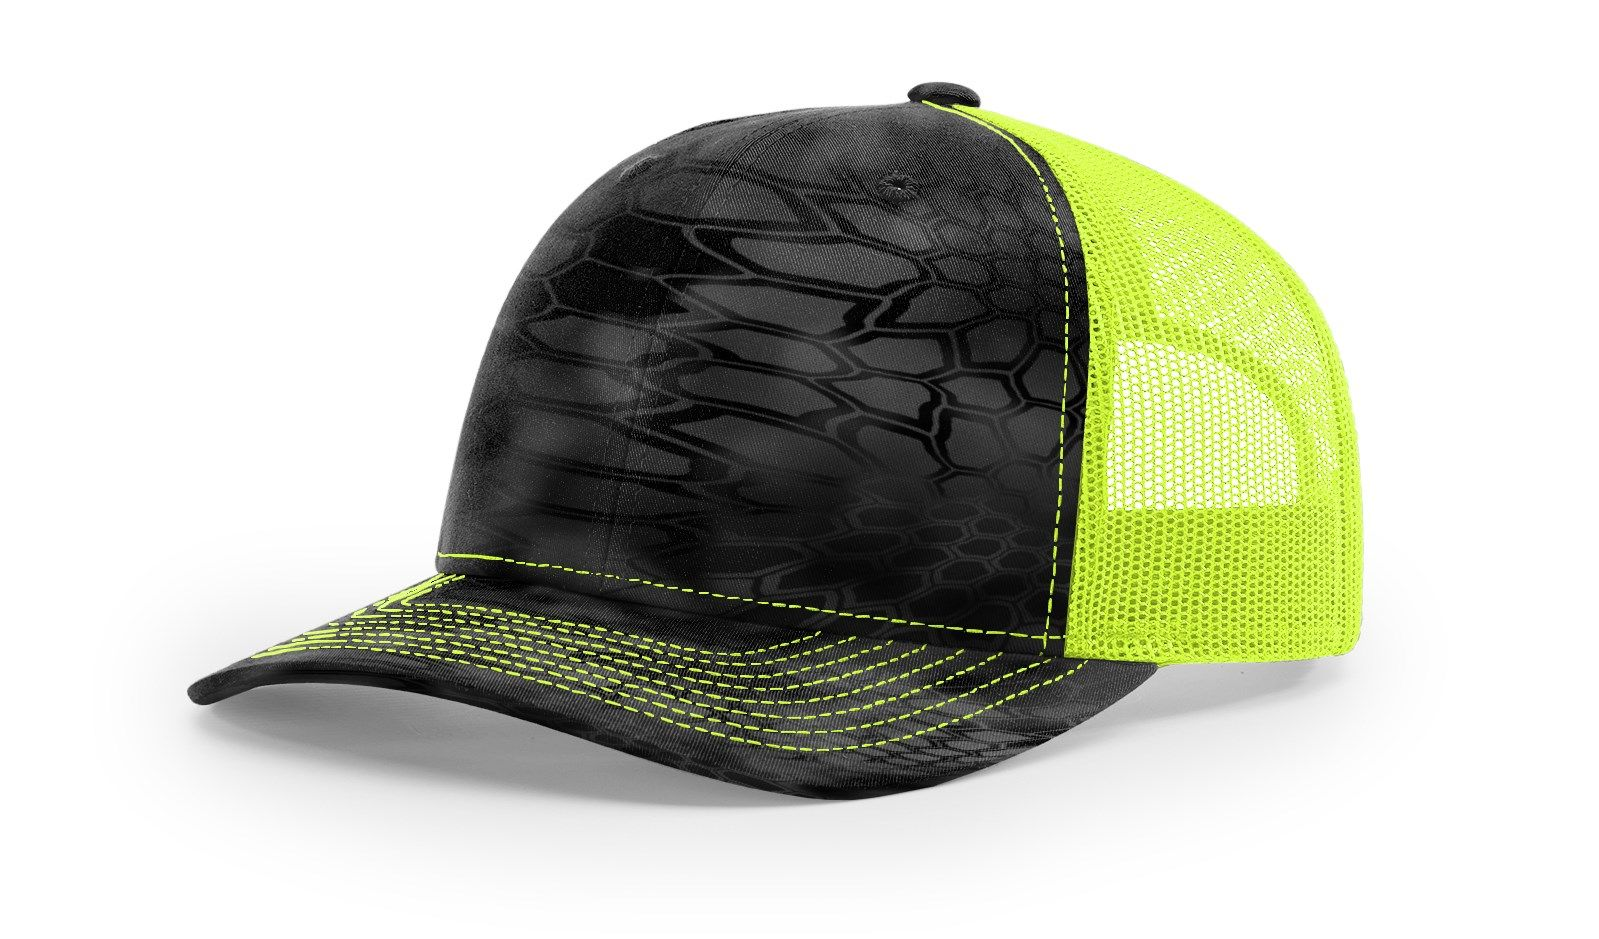 Reel Girls Kryptek Typhon/Neon Yellow Logo Adjustable Trucker Hat (Richardson 112P) - Destin Outdoors